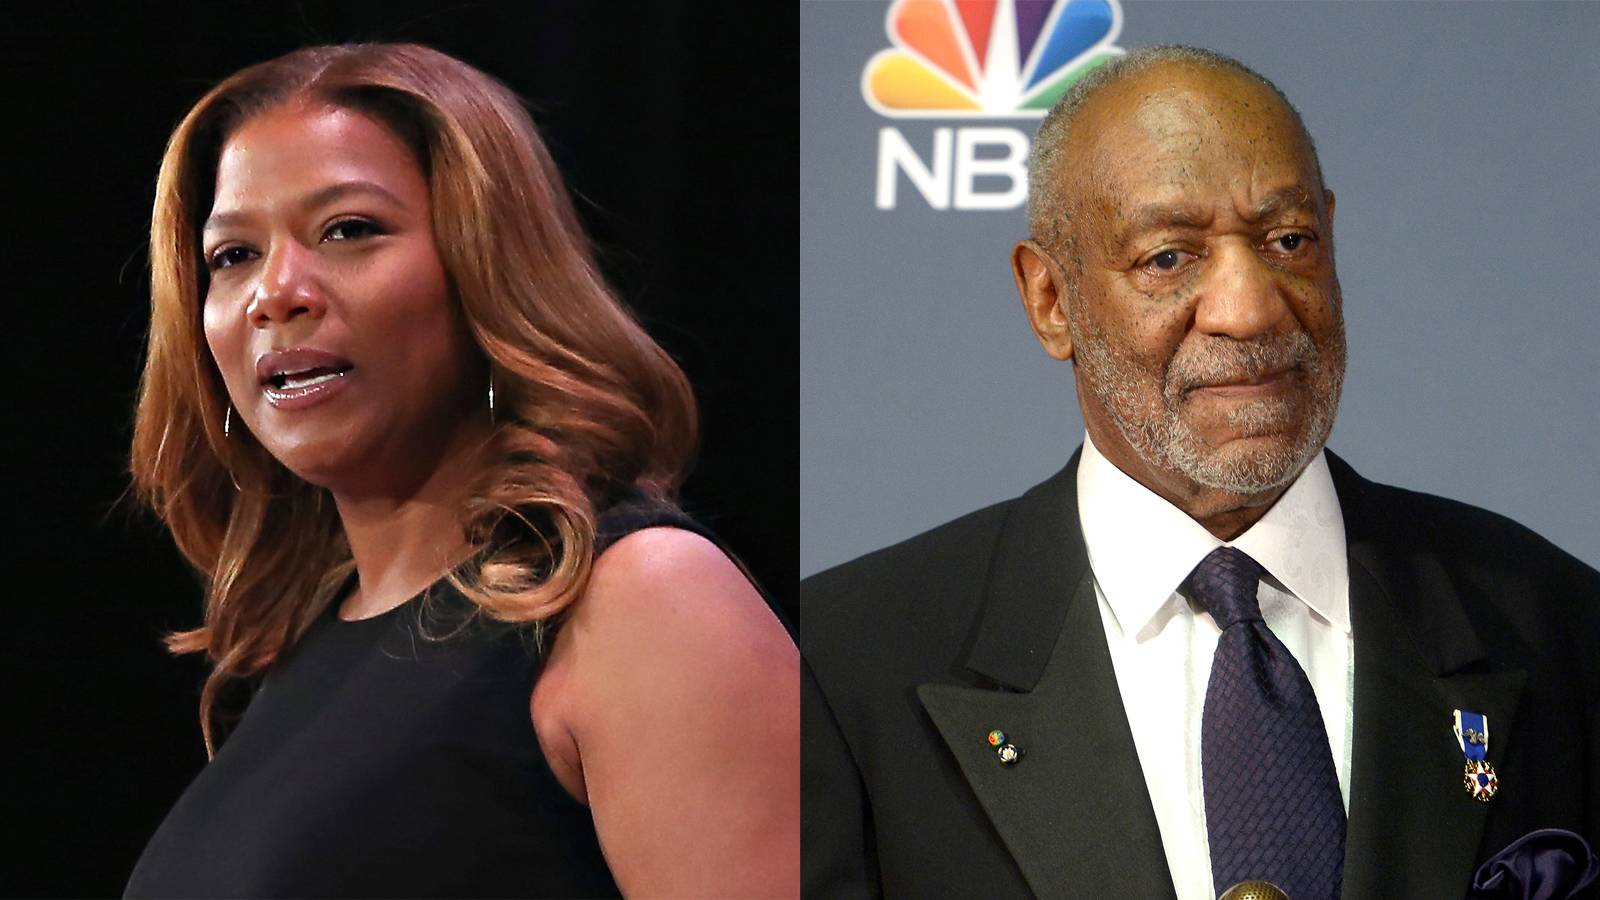 """Queen Latifah, Bill Cosby Drama - Queen Latifah may have cancelled a Bill Cosby interview on her show due to allegations of abuse that repeatedly keep surfacing against him.According to reports, 13 women have accused Cosby of rape and/or sexual abuse between 1970 and the mid-2000s. The allegations have once again, resurfaced.However, Bill Cosby's reps are claiming that he only postponed the interview.This sounds shady. It wouldn't be a surprise if it were true that Queen Latifah cancelled his appearance for this reason as she has spoken adamantly against sexual harassment, particularly in her classic song, """"U.N.I.T.Y.""""We'll be on standby to see how this unfolds.   (Photos from left: Cindy Ord/Getty Images, Michael Loccisano/Getty Images)"""